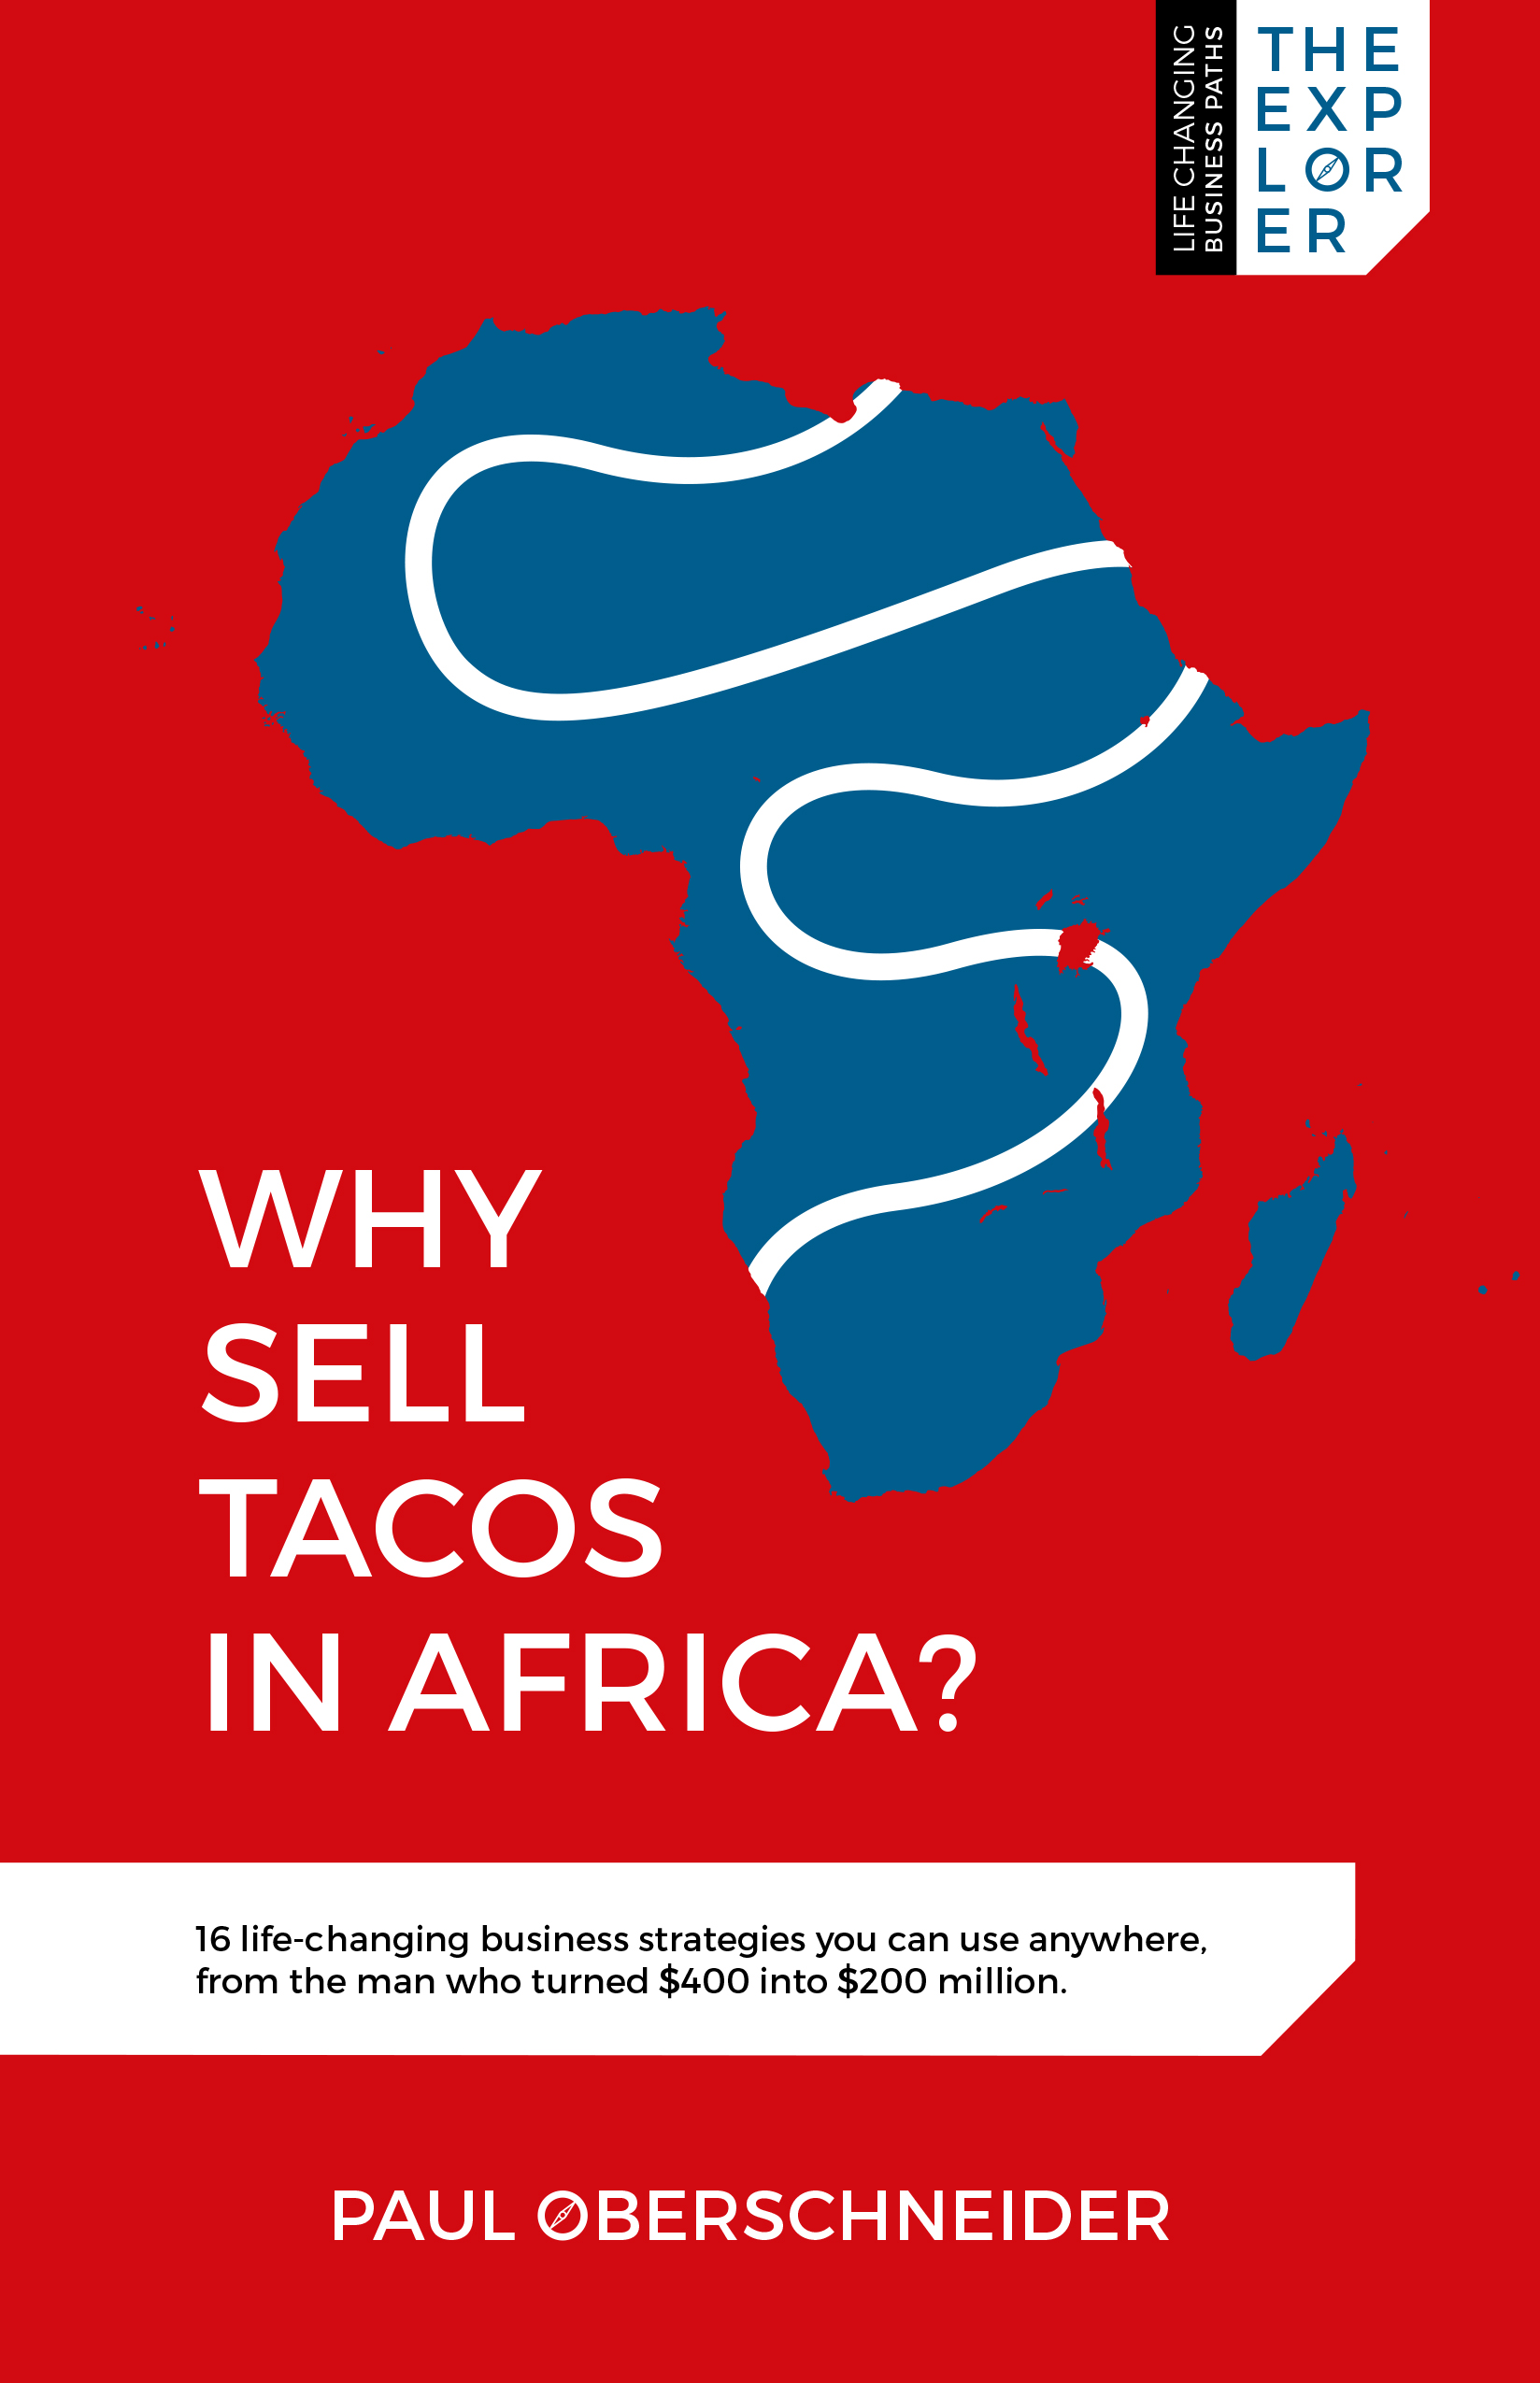 Why Sell Tacos in Africa by Paul Oberschneider